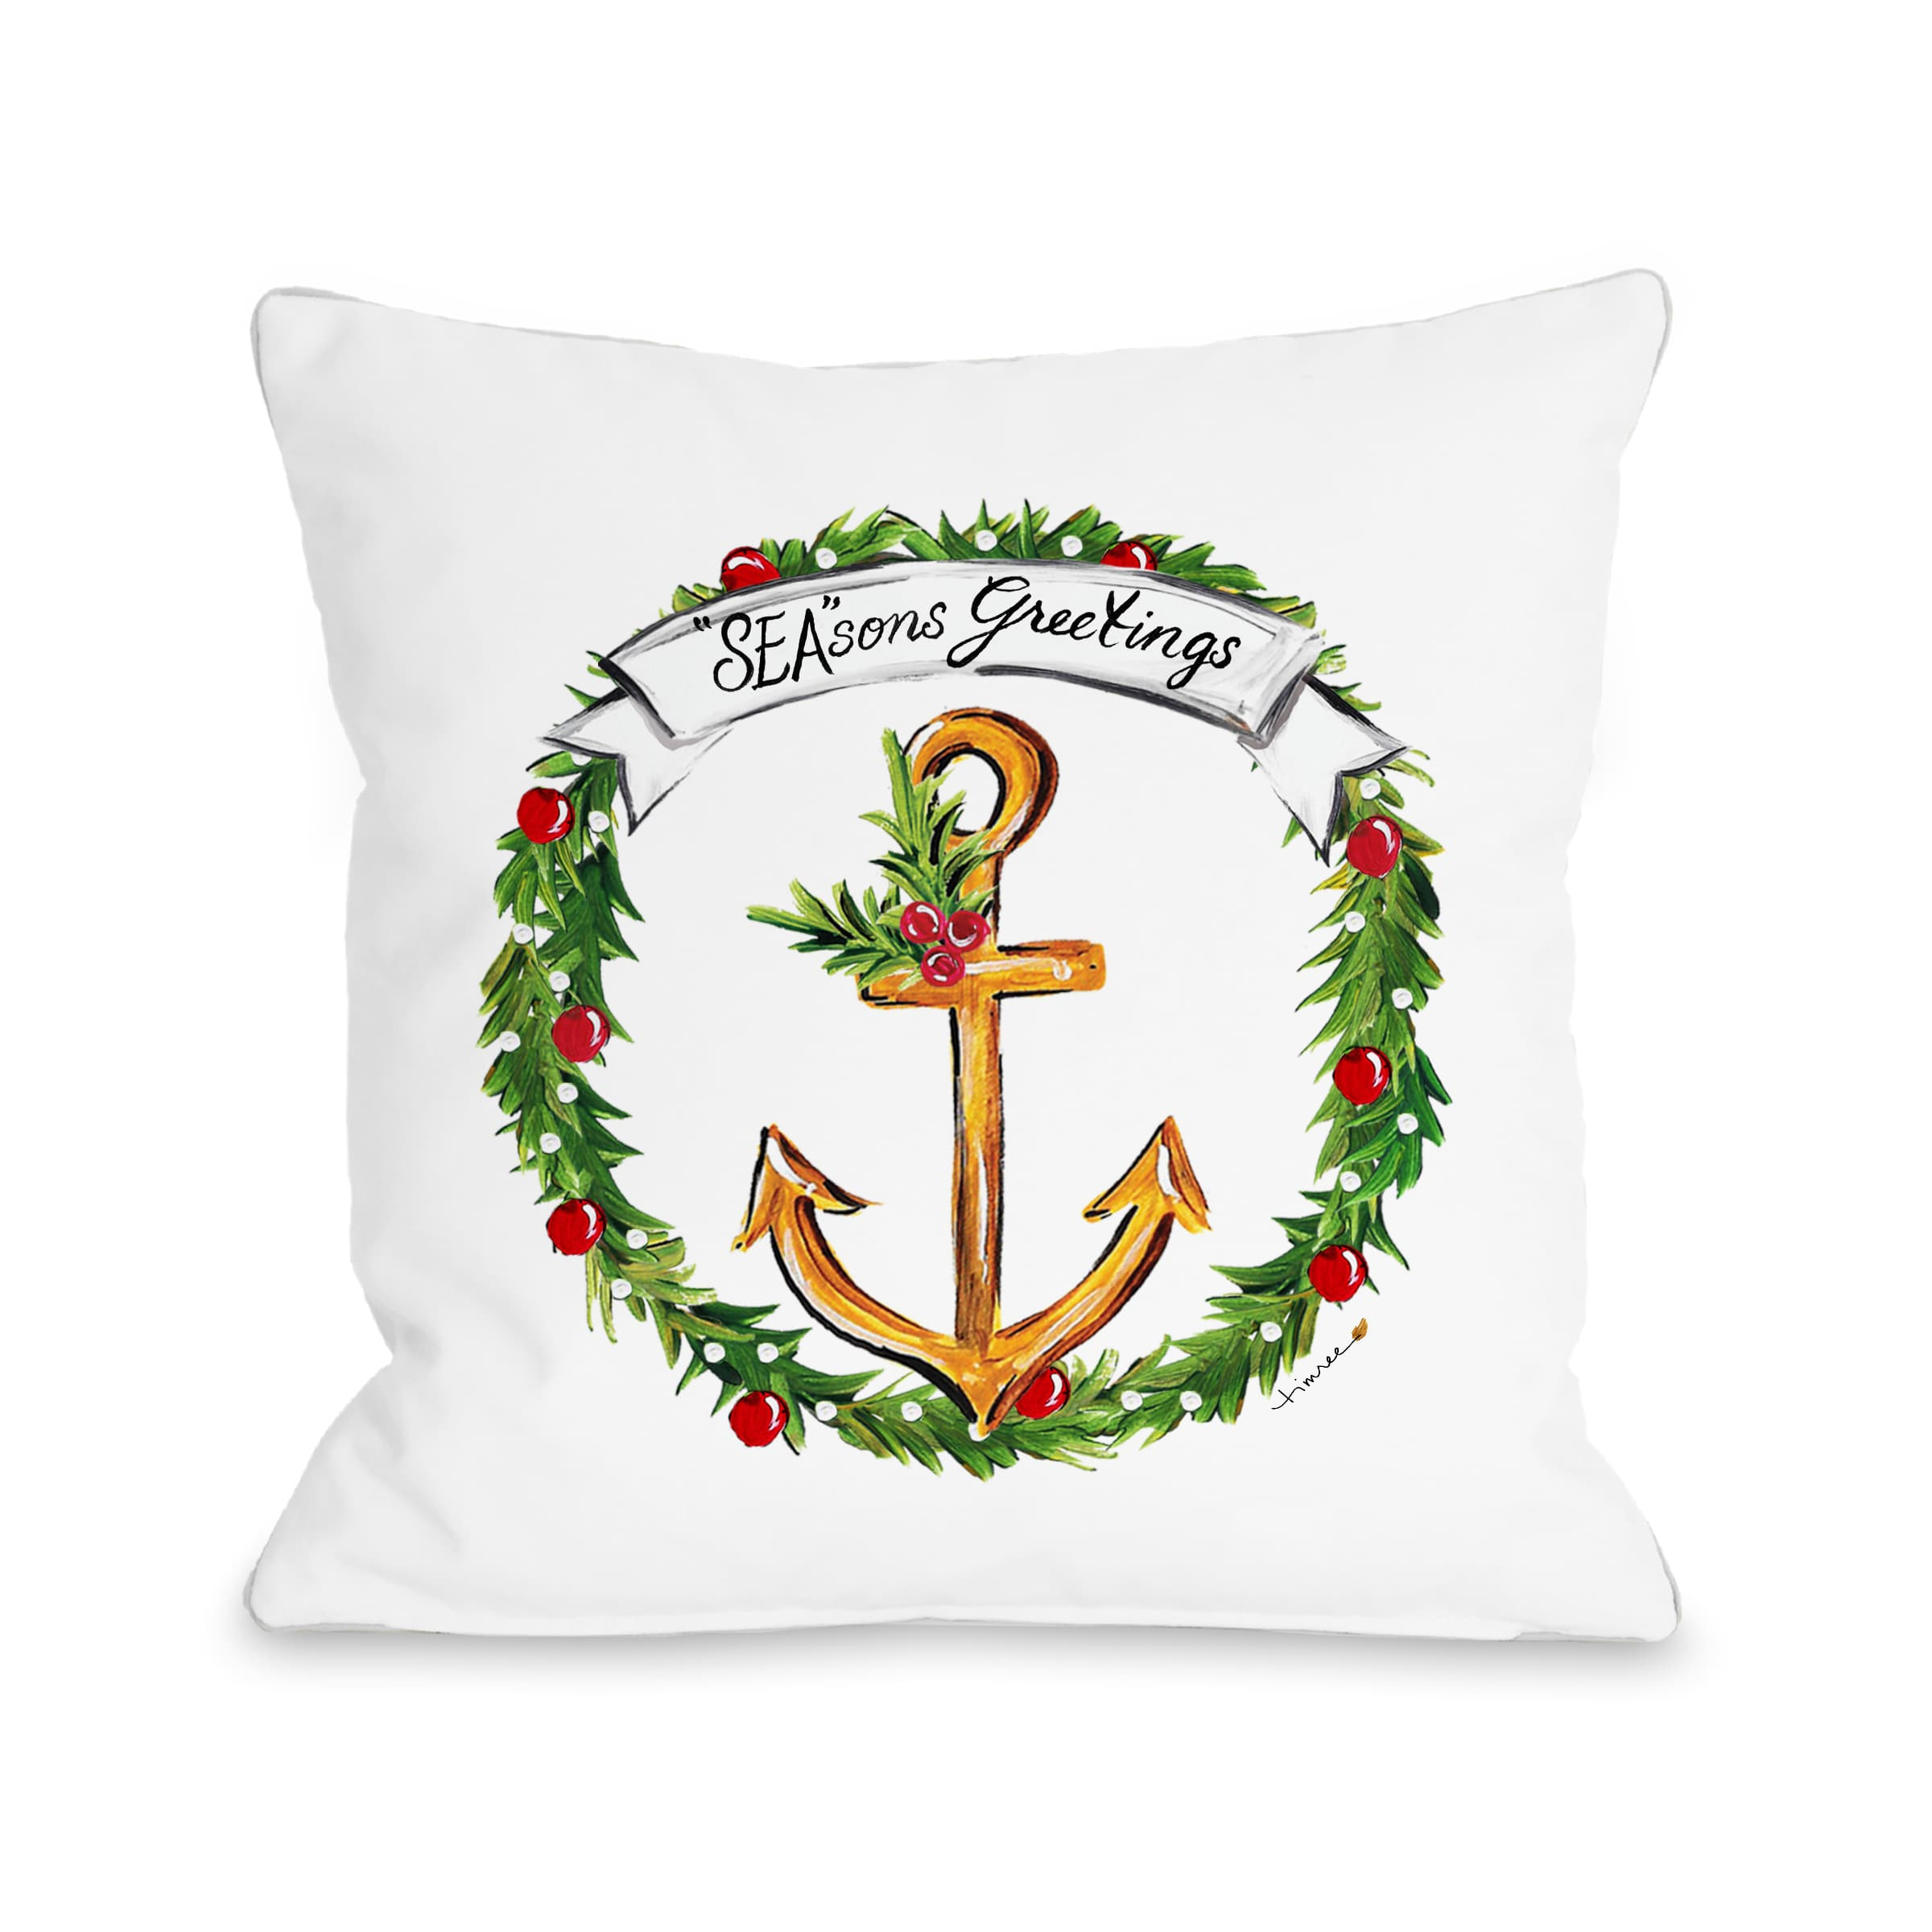 Anchor Wreath - Multi 16x16 Pillow by Timree Gold